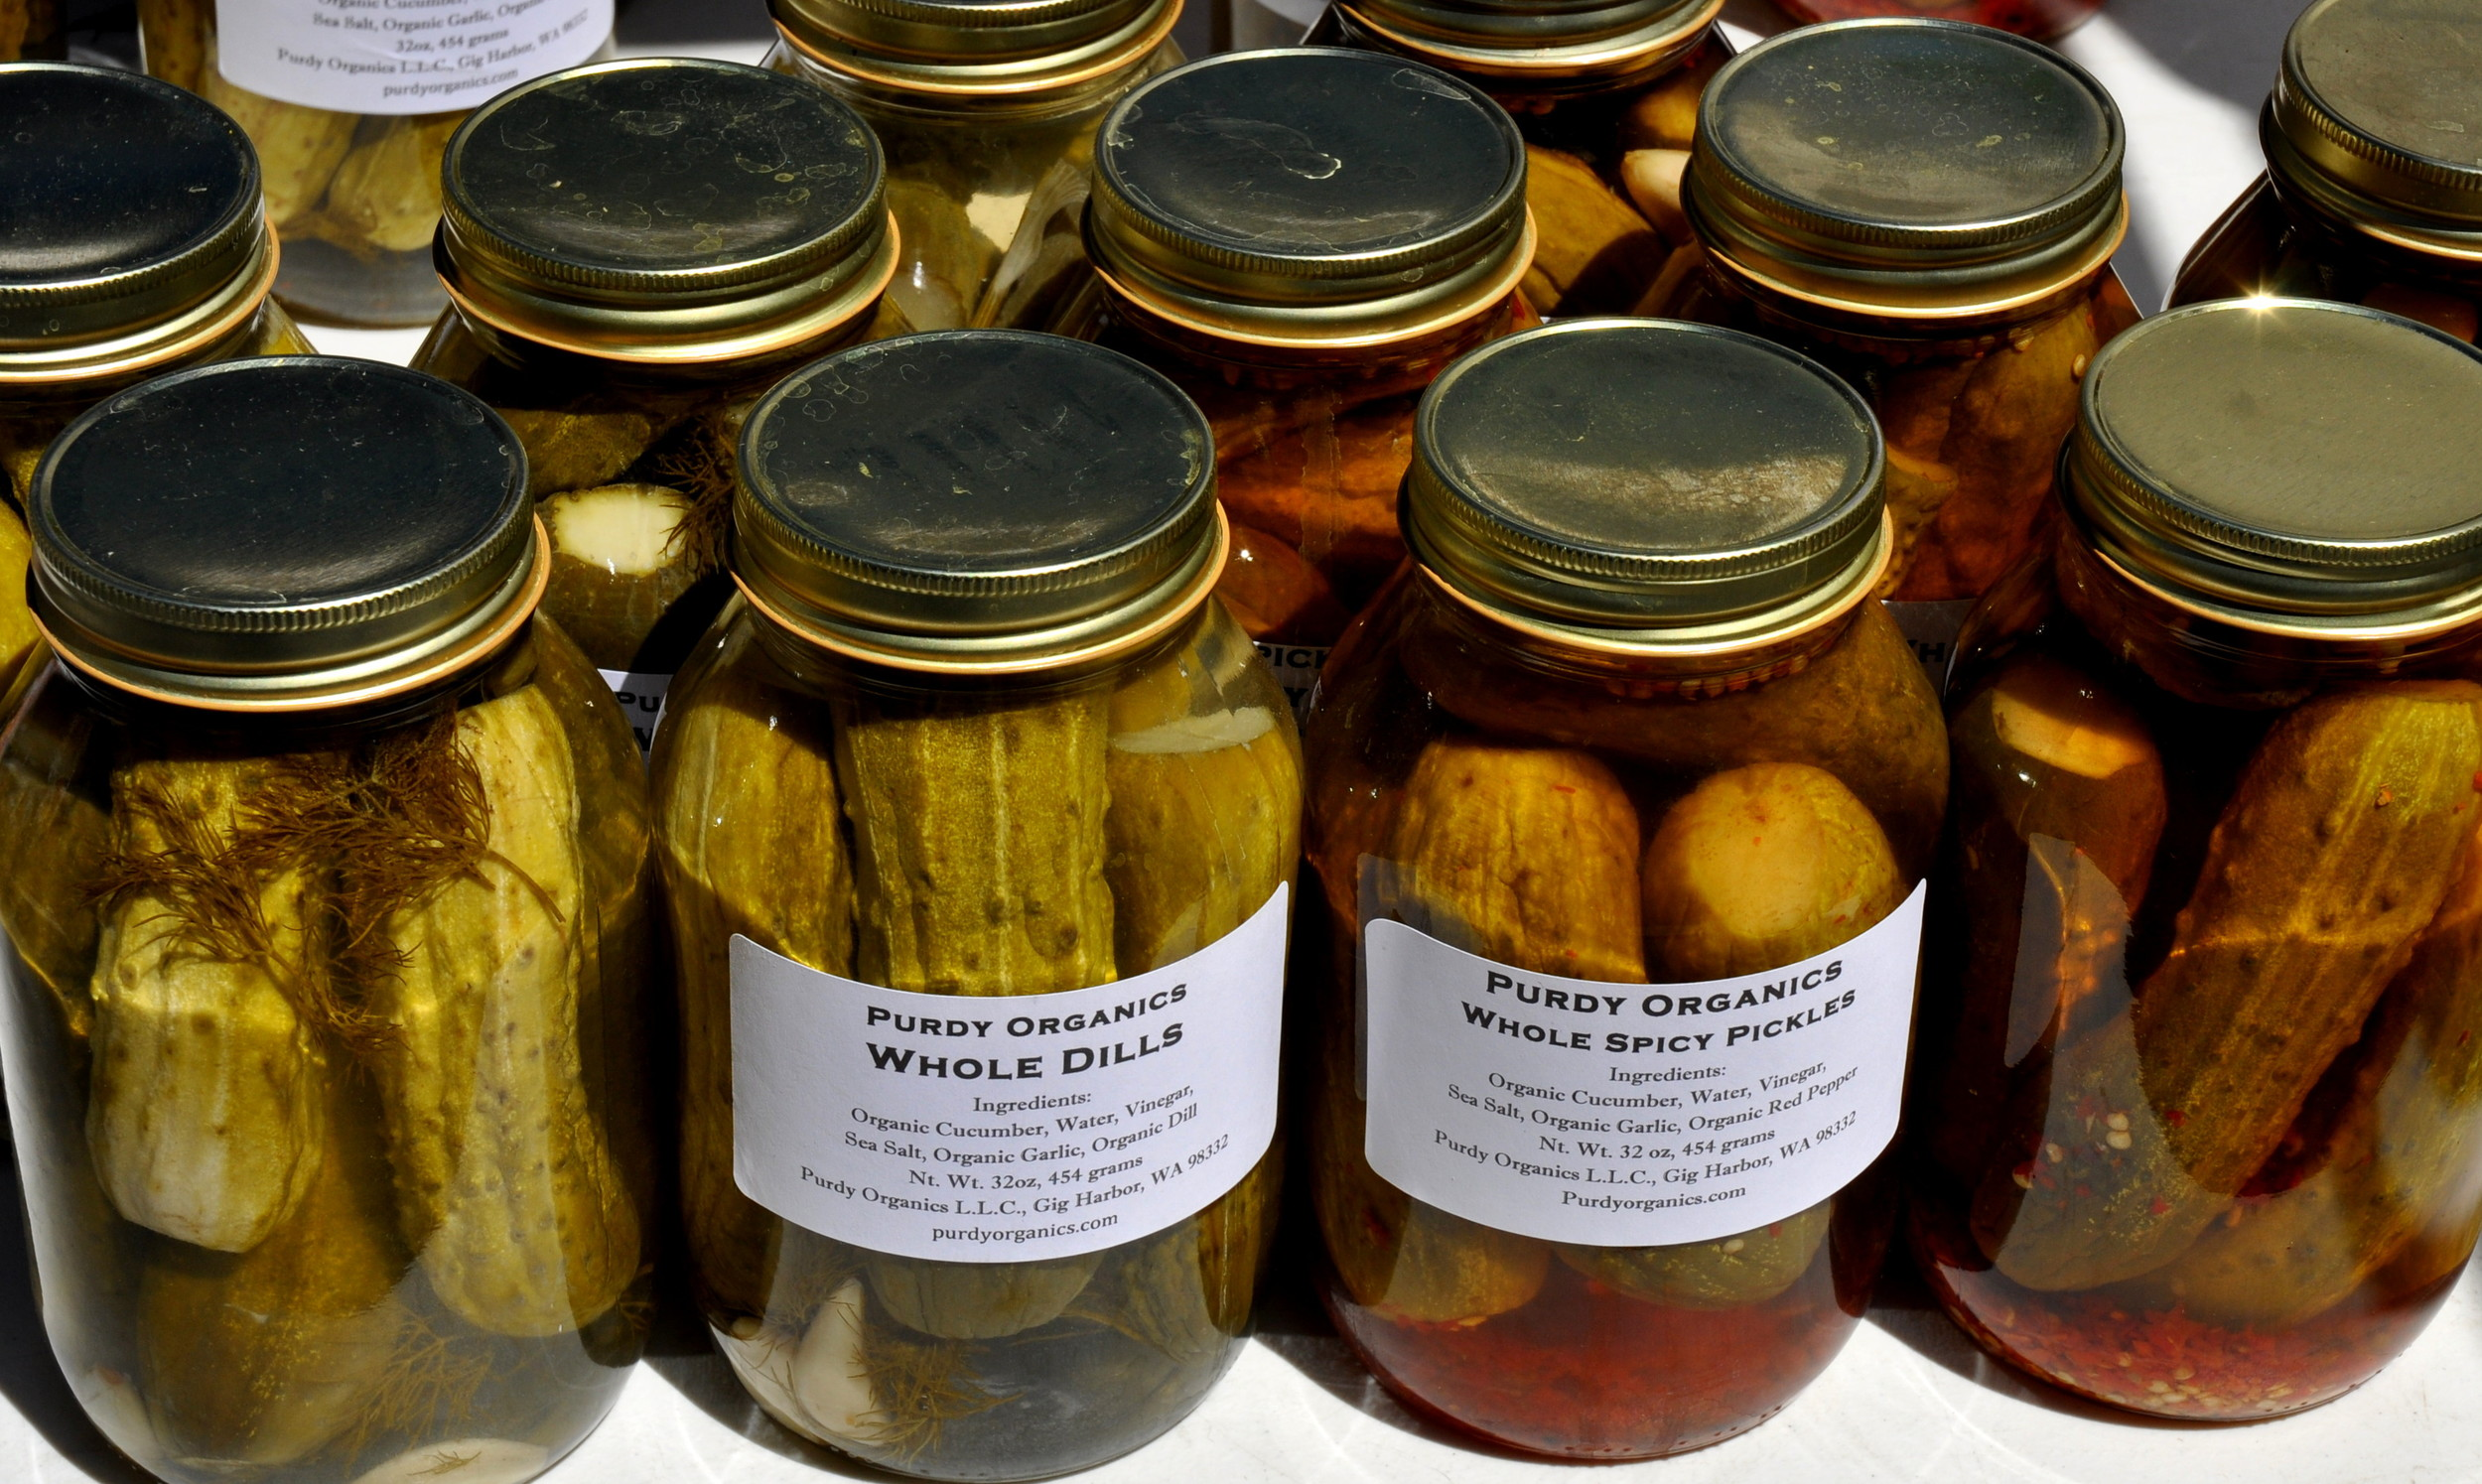 Dill pickles from Purdy Pickle. Photo copyright 2013 by Zachary D. Lyons.